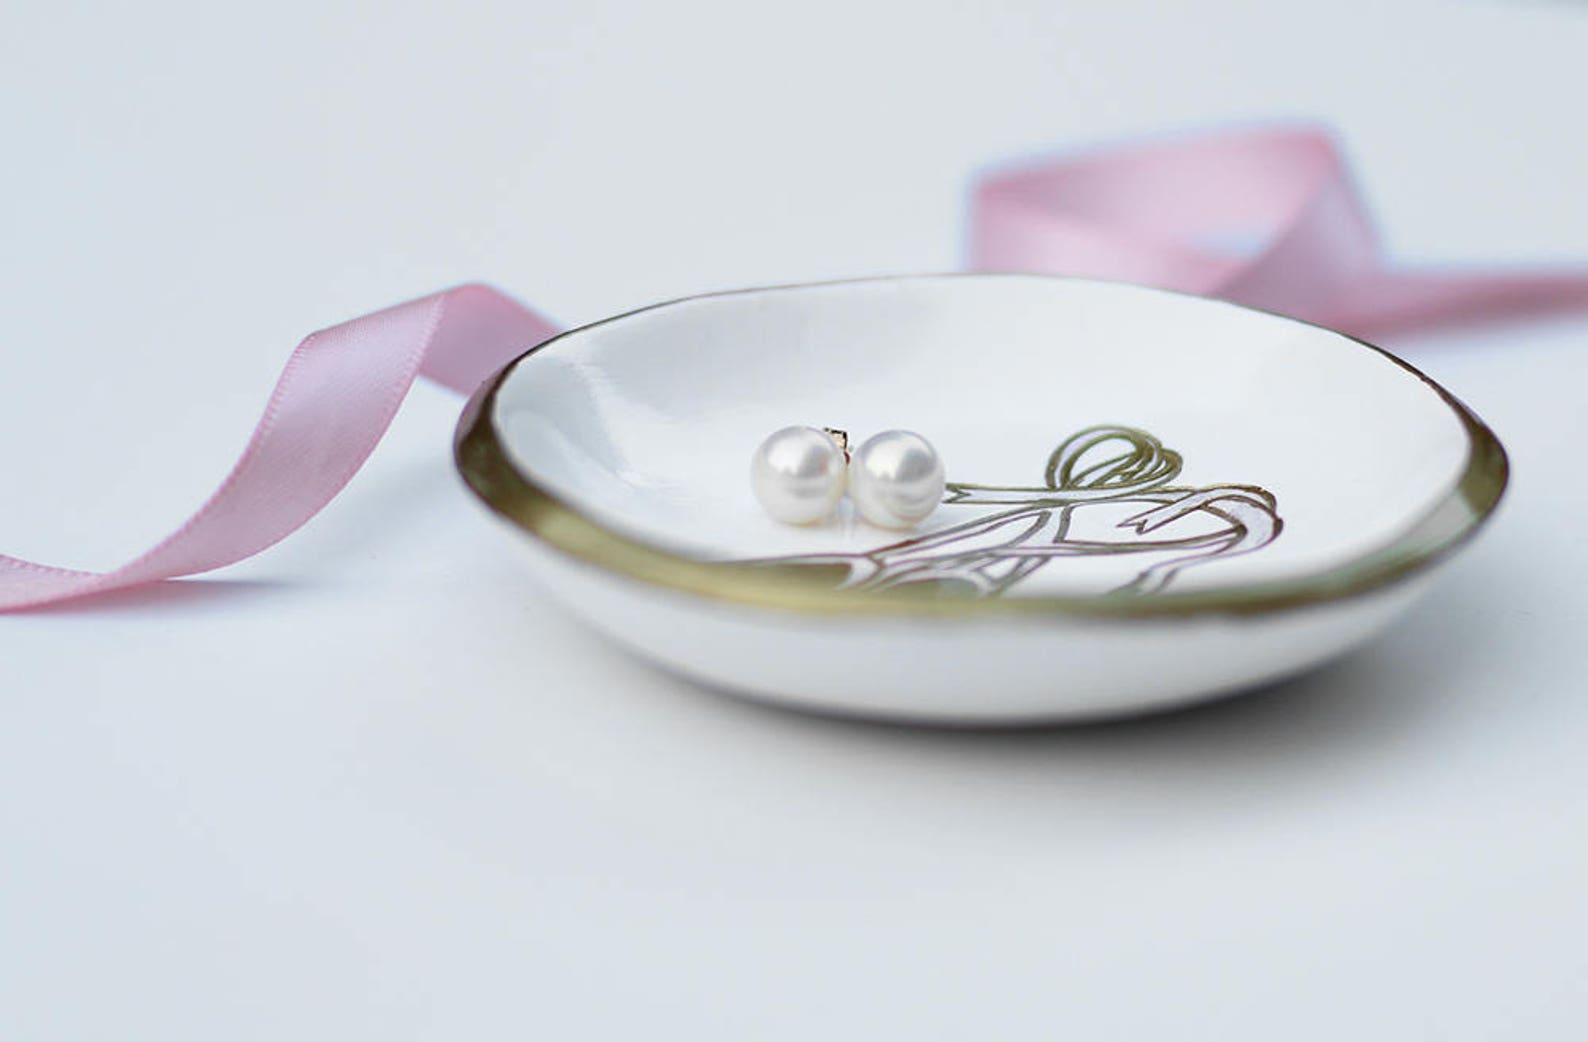 ballet jewelry dish / personalized ring dish / ring holder / pink and gold / unique gift for dancers / gift for bff / dainty gif